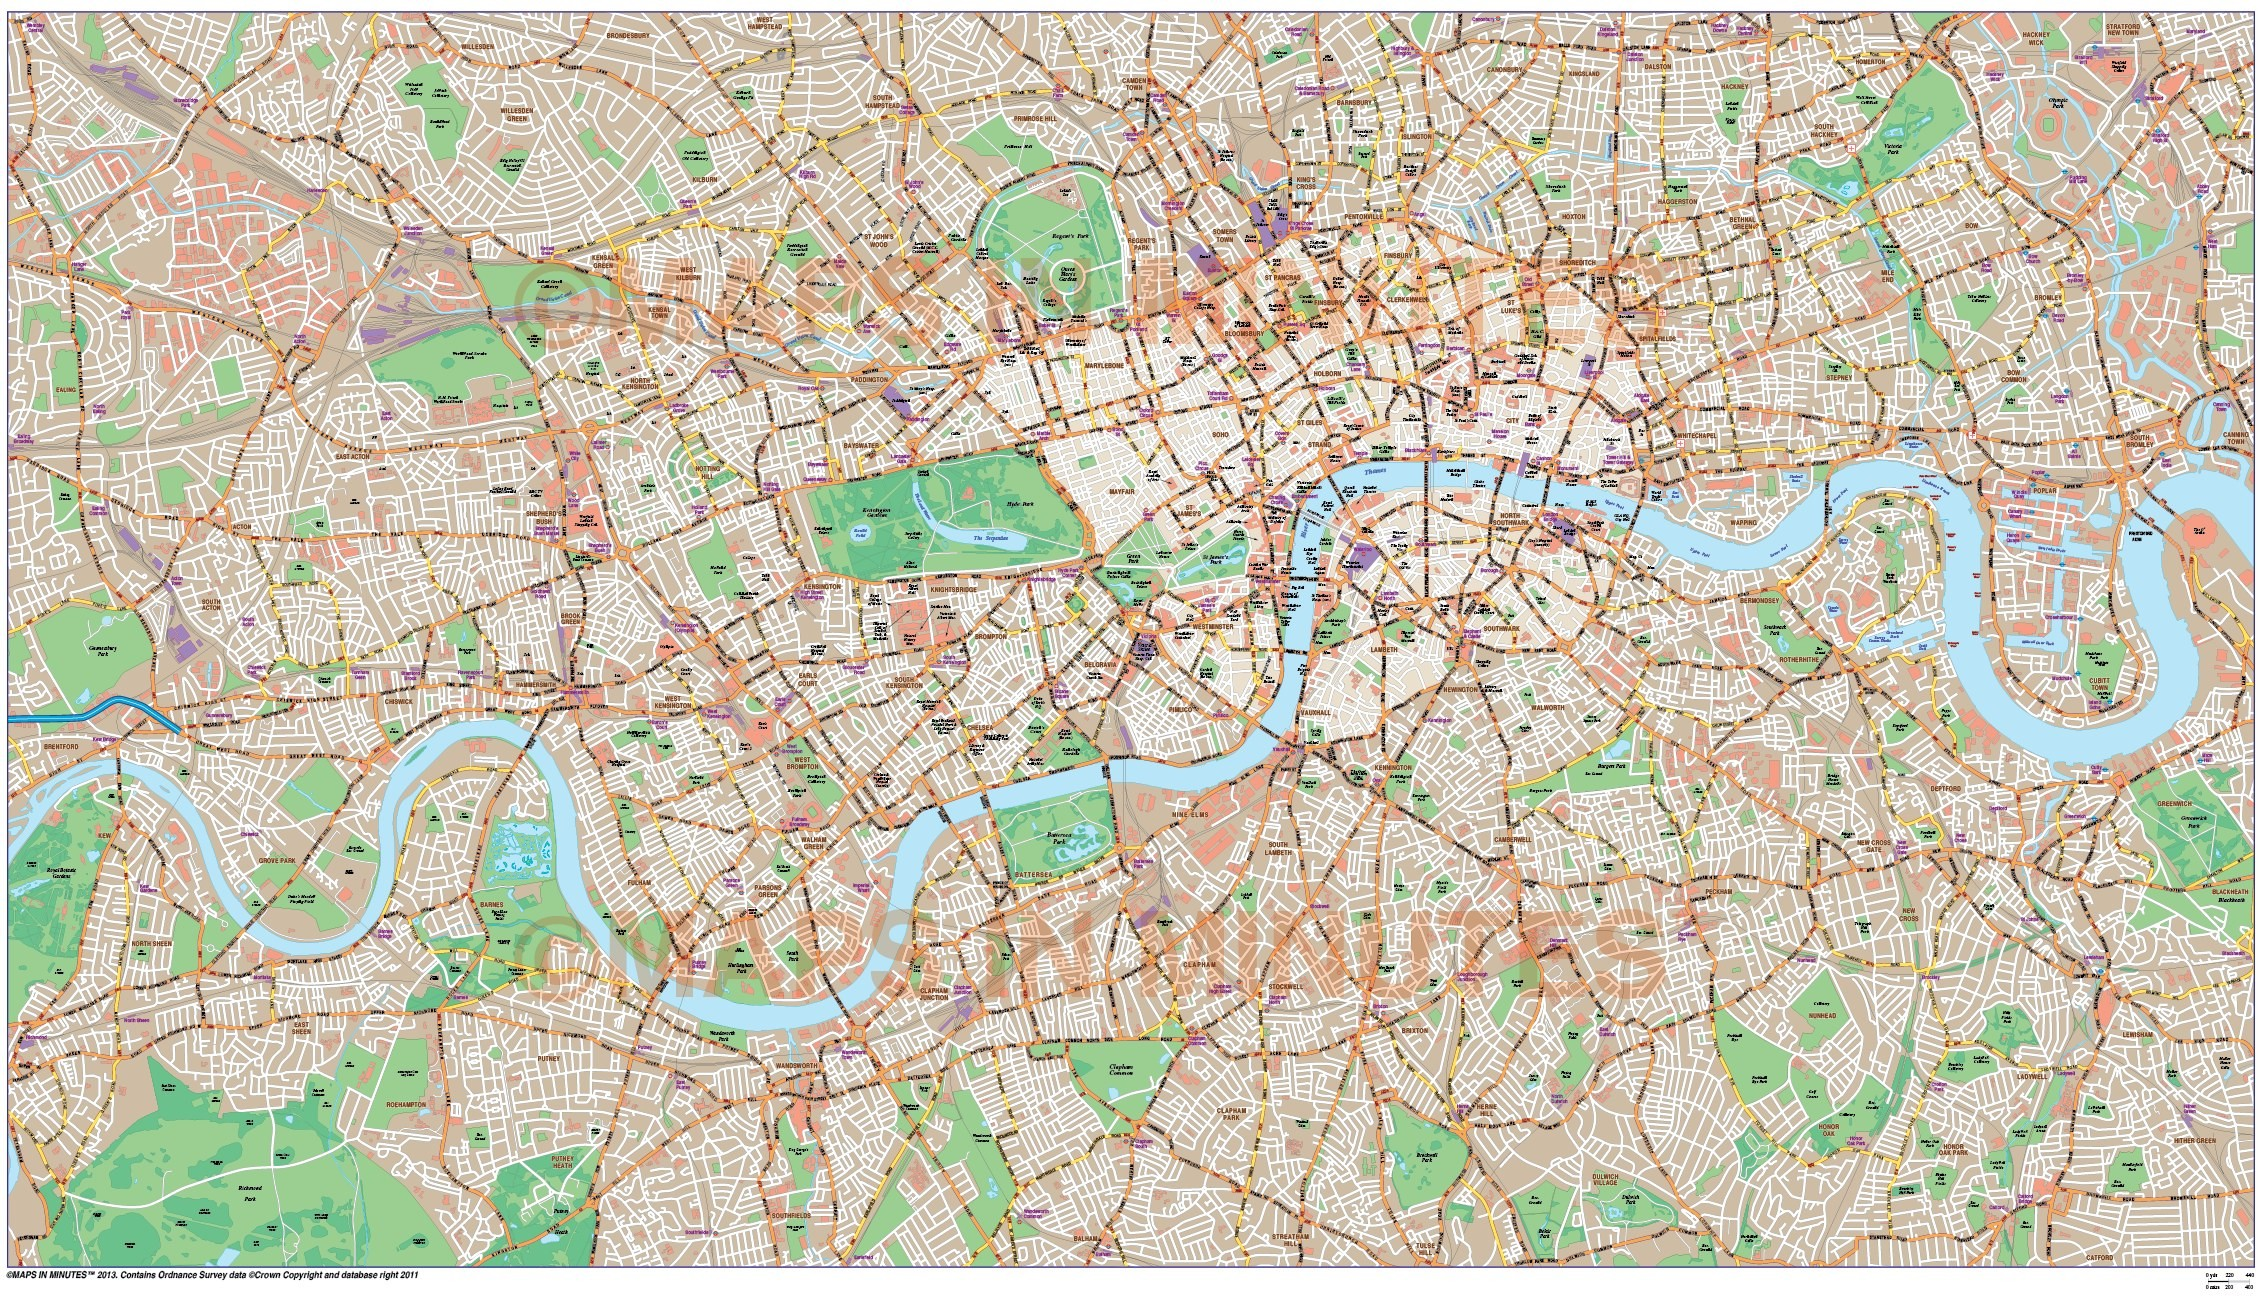 London Map Printable.London Large Base Map 10 000 Scale In Illustrator Cs Format